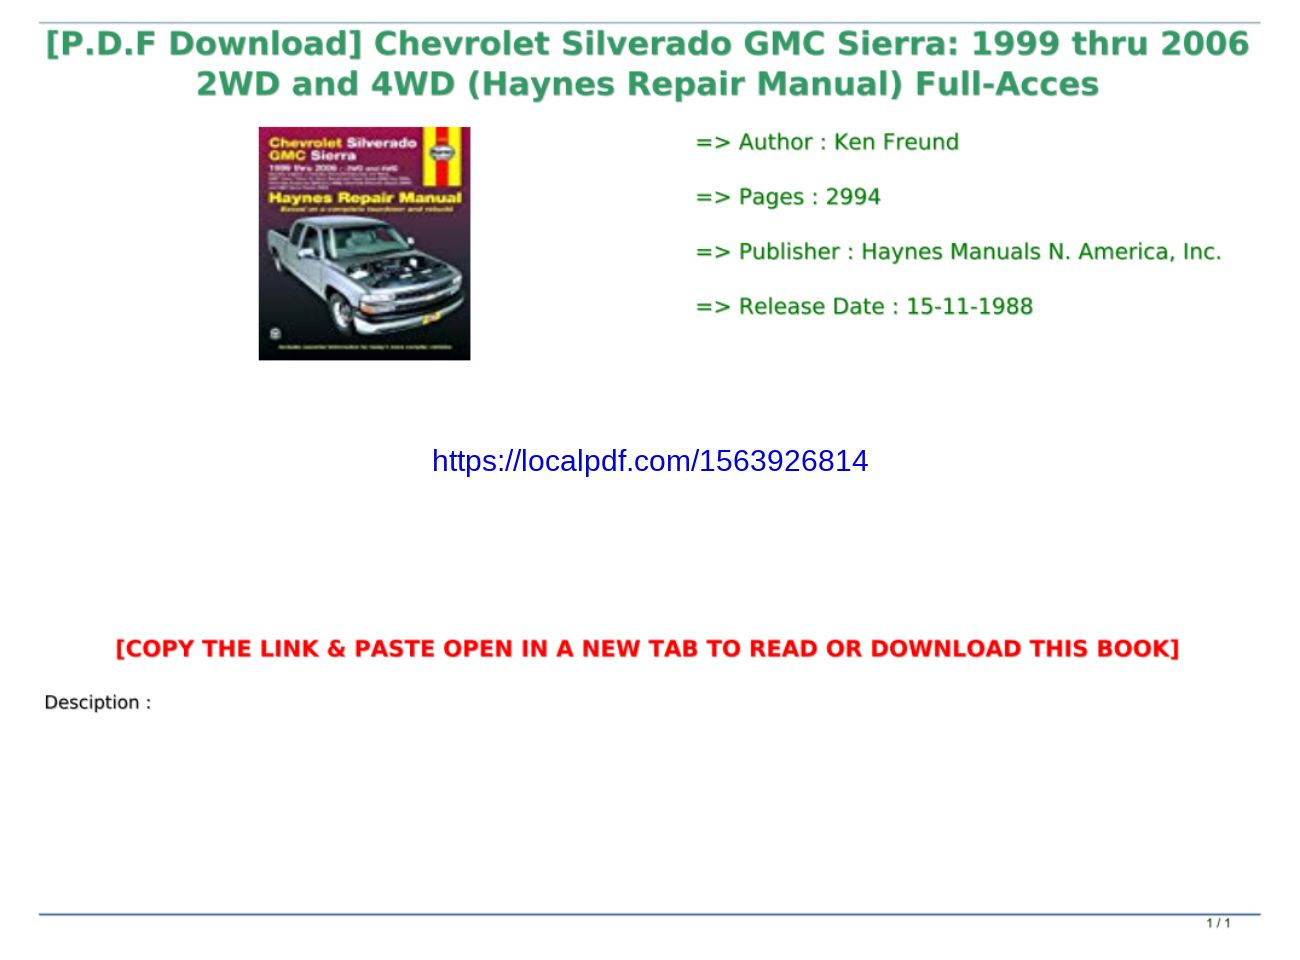 Automotive Professional & Technical 1999 thru 2006 2WD and 4WD ...